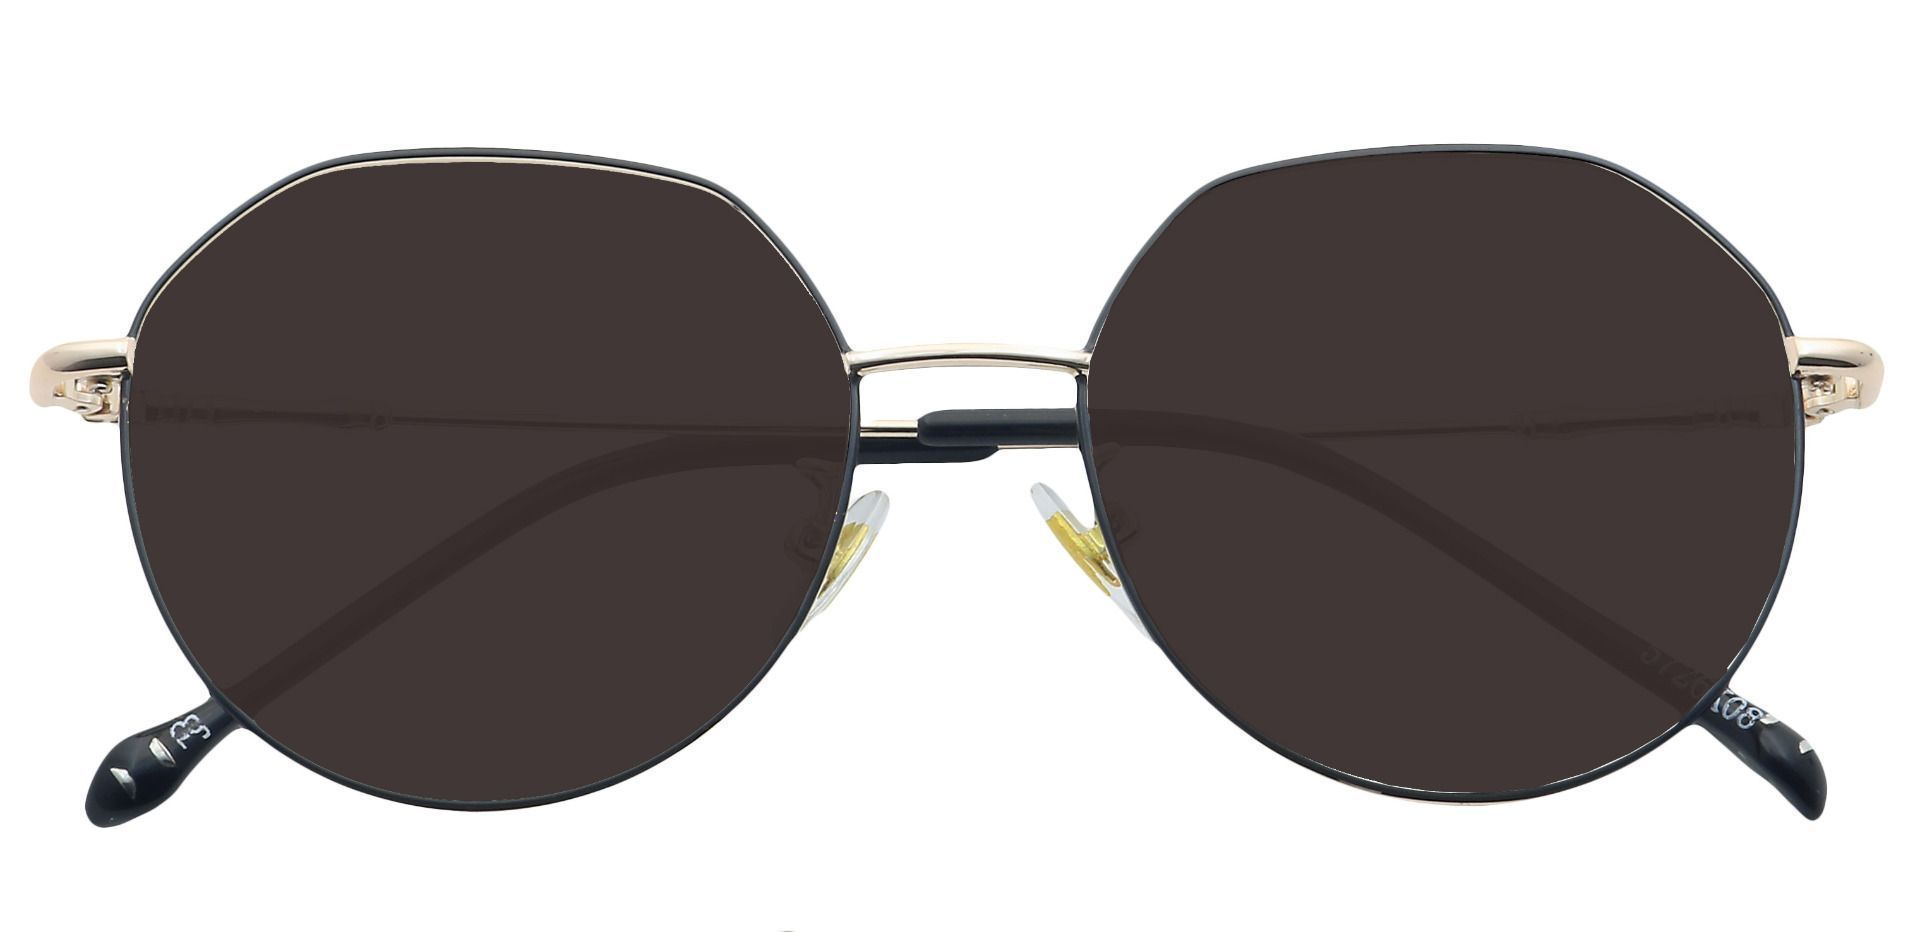 Wesley Round Prescription Sunglasses - Black Frame With Gray Lenses